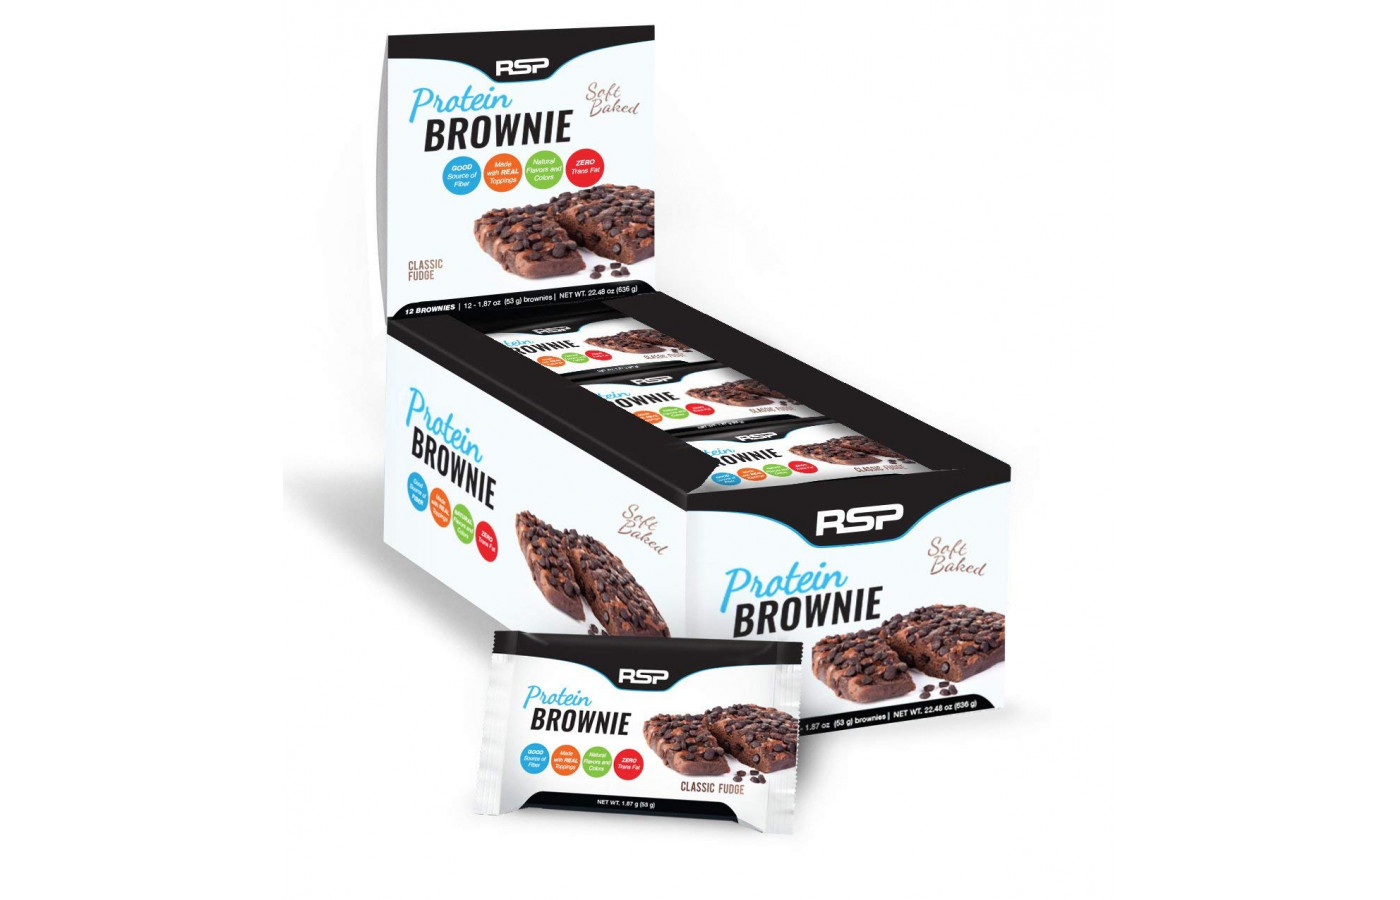 RSP Protein Brownie Box